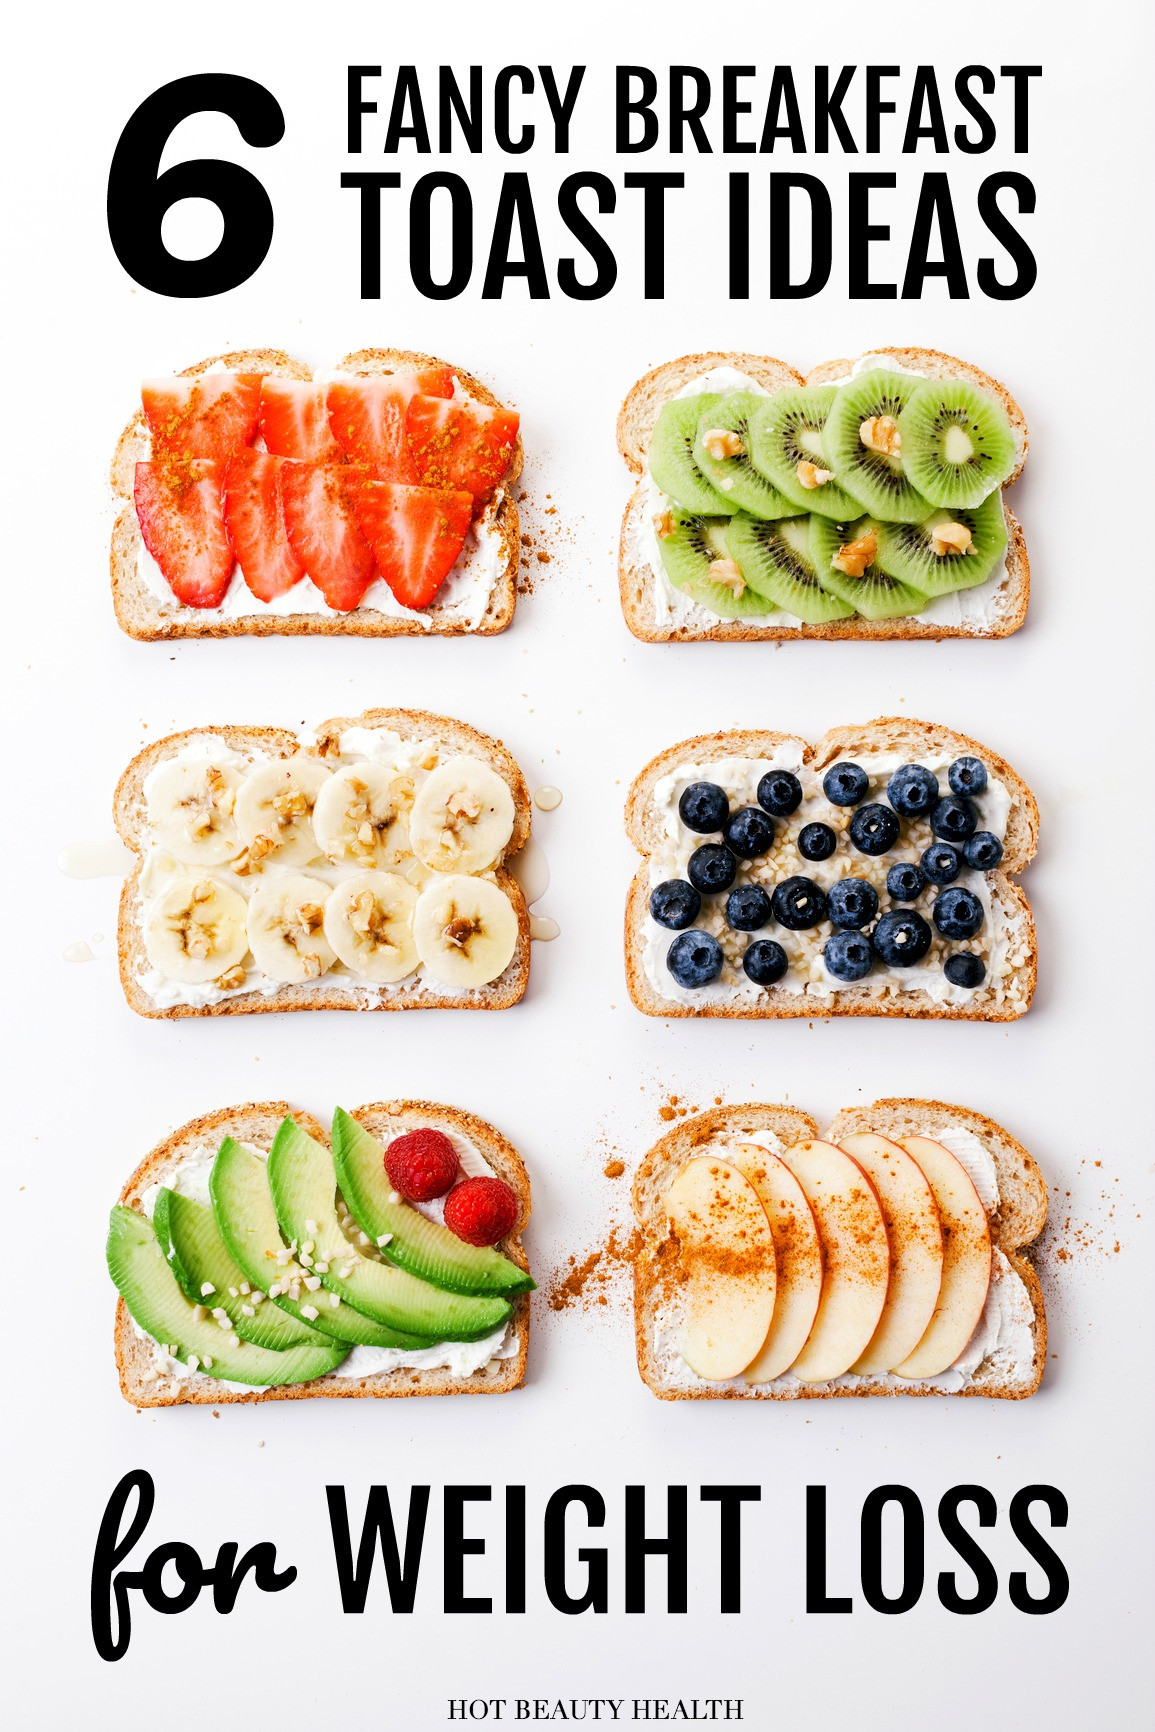 Healthy Breakfast Ideas For Weight Loss  6 Easy & Creative Ways to Fancy Up Breakfast Toasts Hot